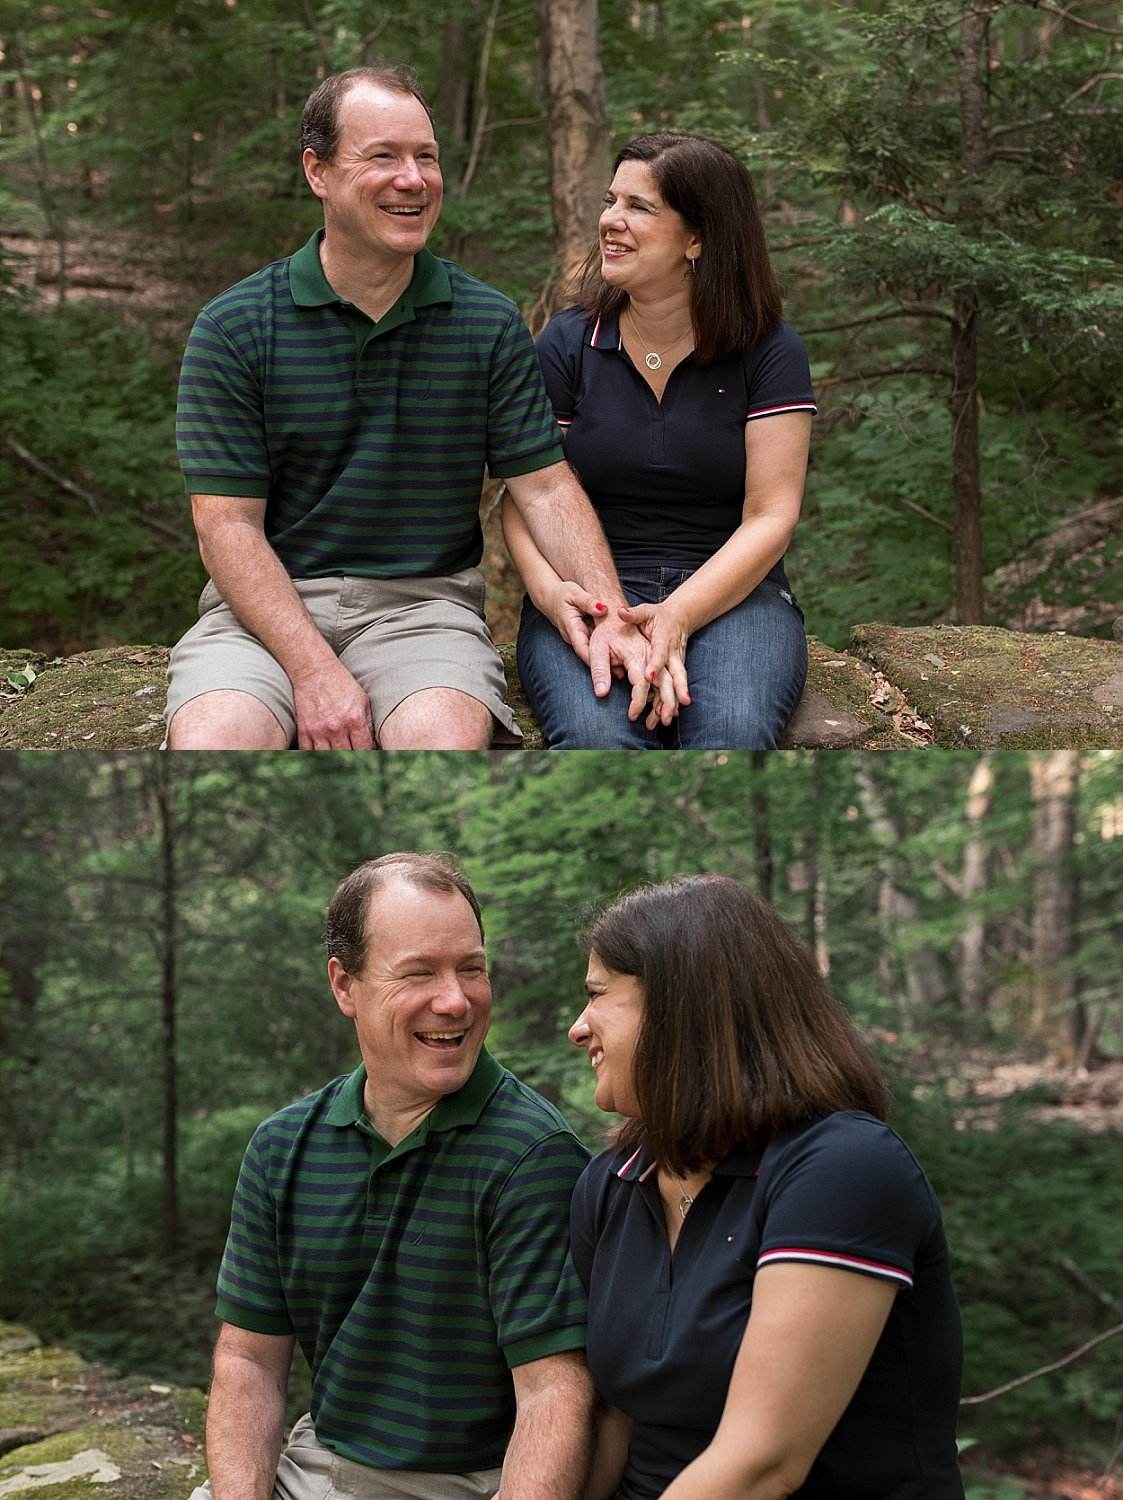 candid photographer CT. husband and wife laughing during family hike in middlesex county CT